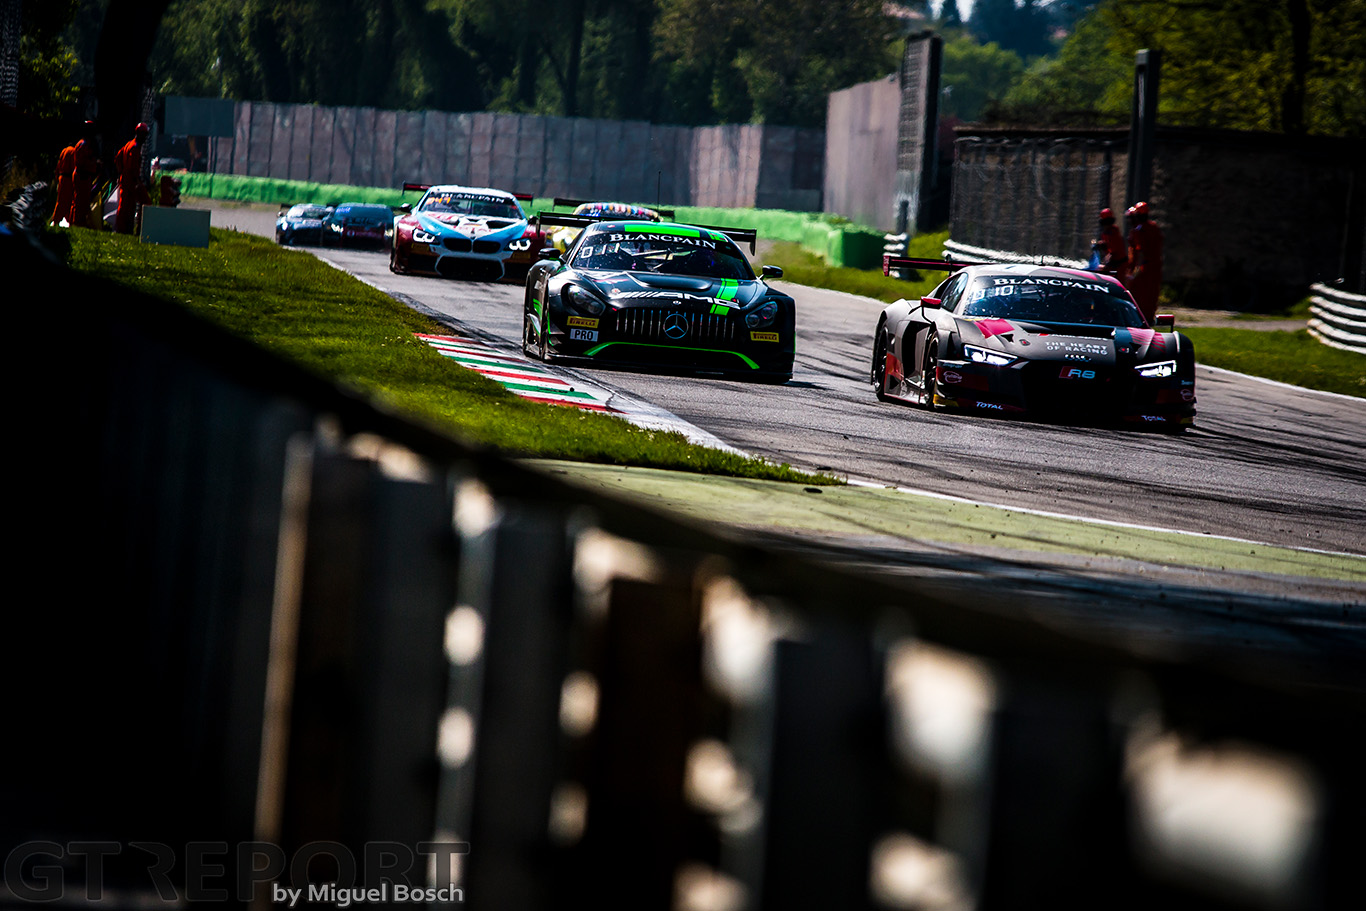 Blancpain GT Monza race report: Forza Germania